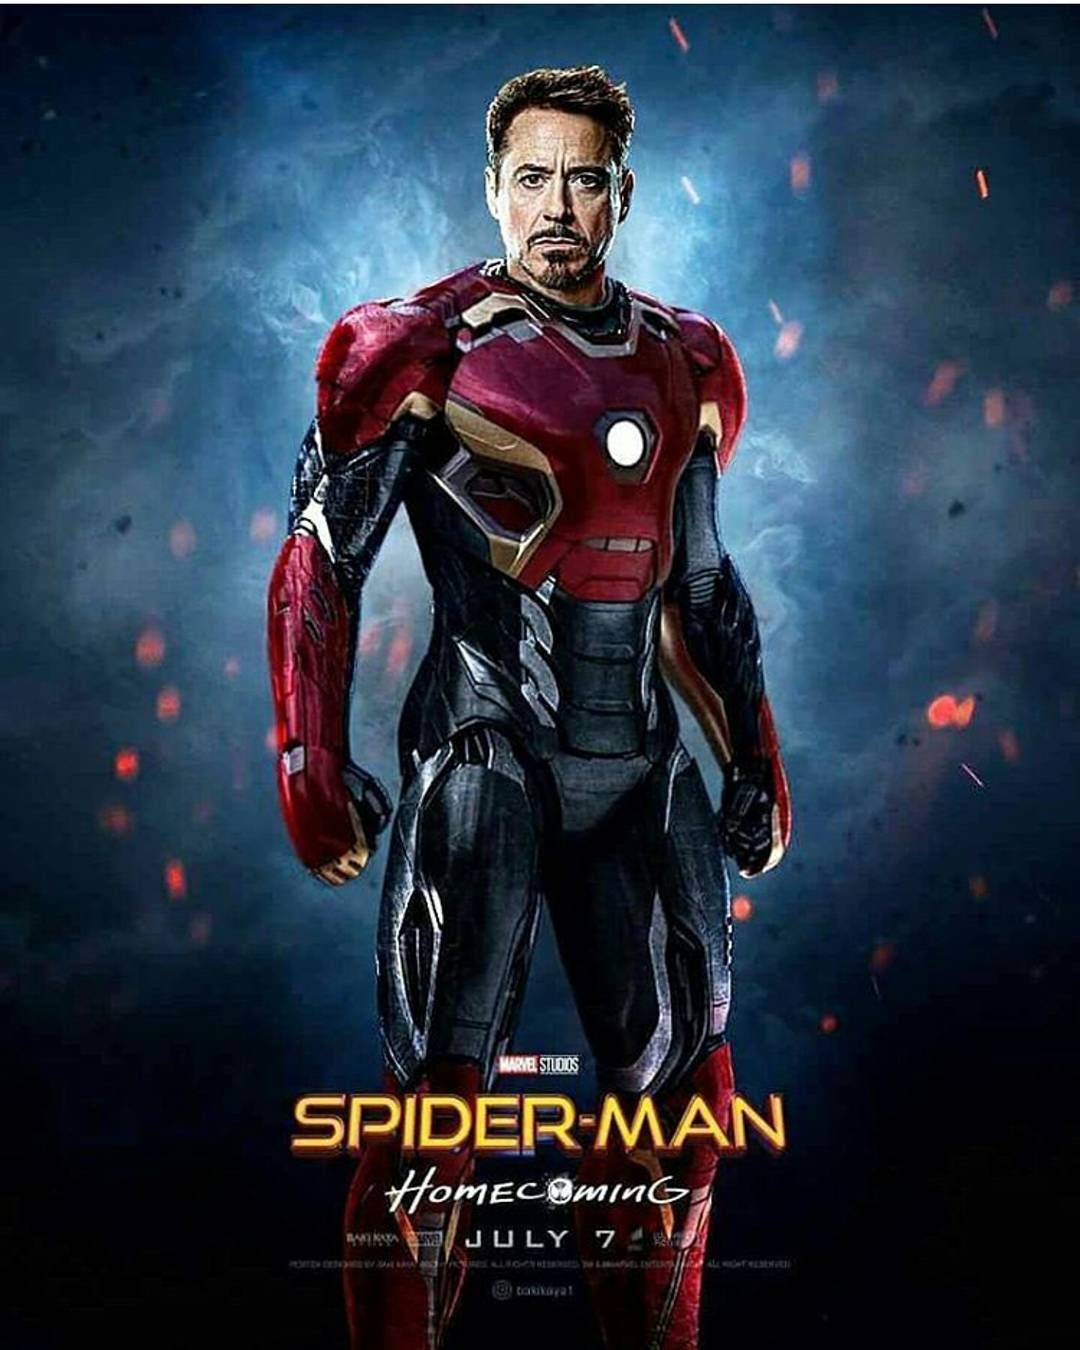 Iron man and spider man wallpapers wallpaper cave - Iron man spiderman wallpaper ...